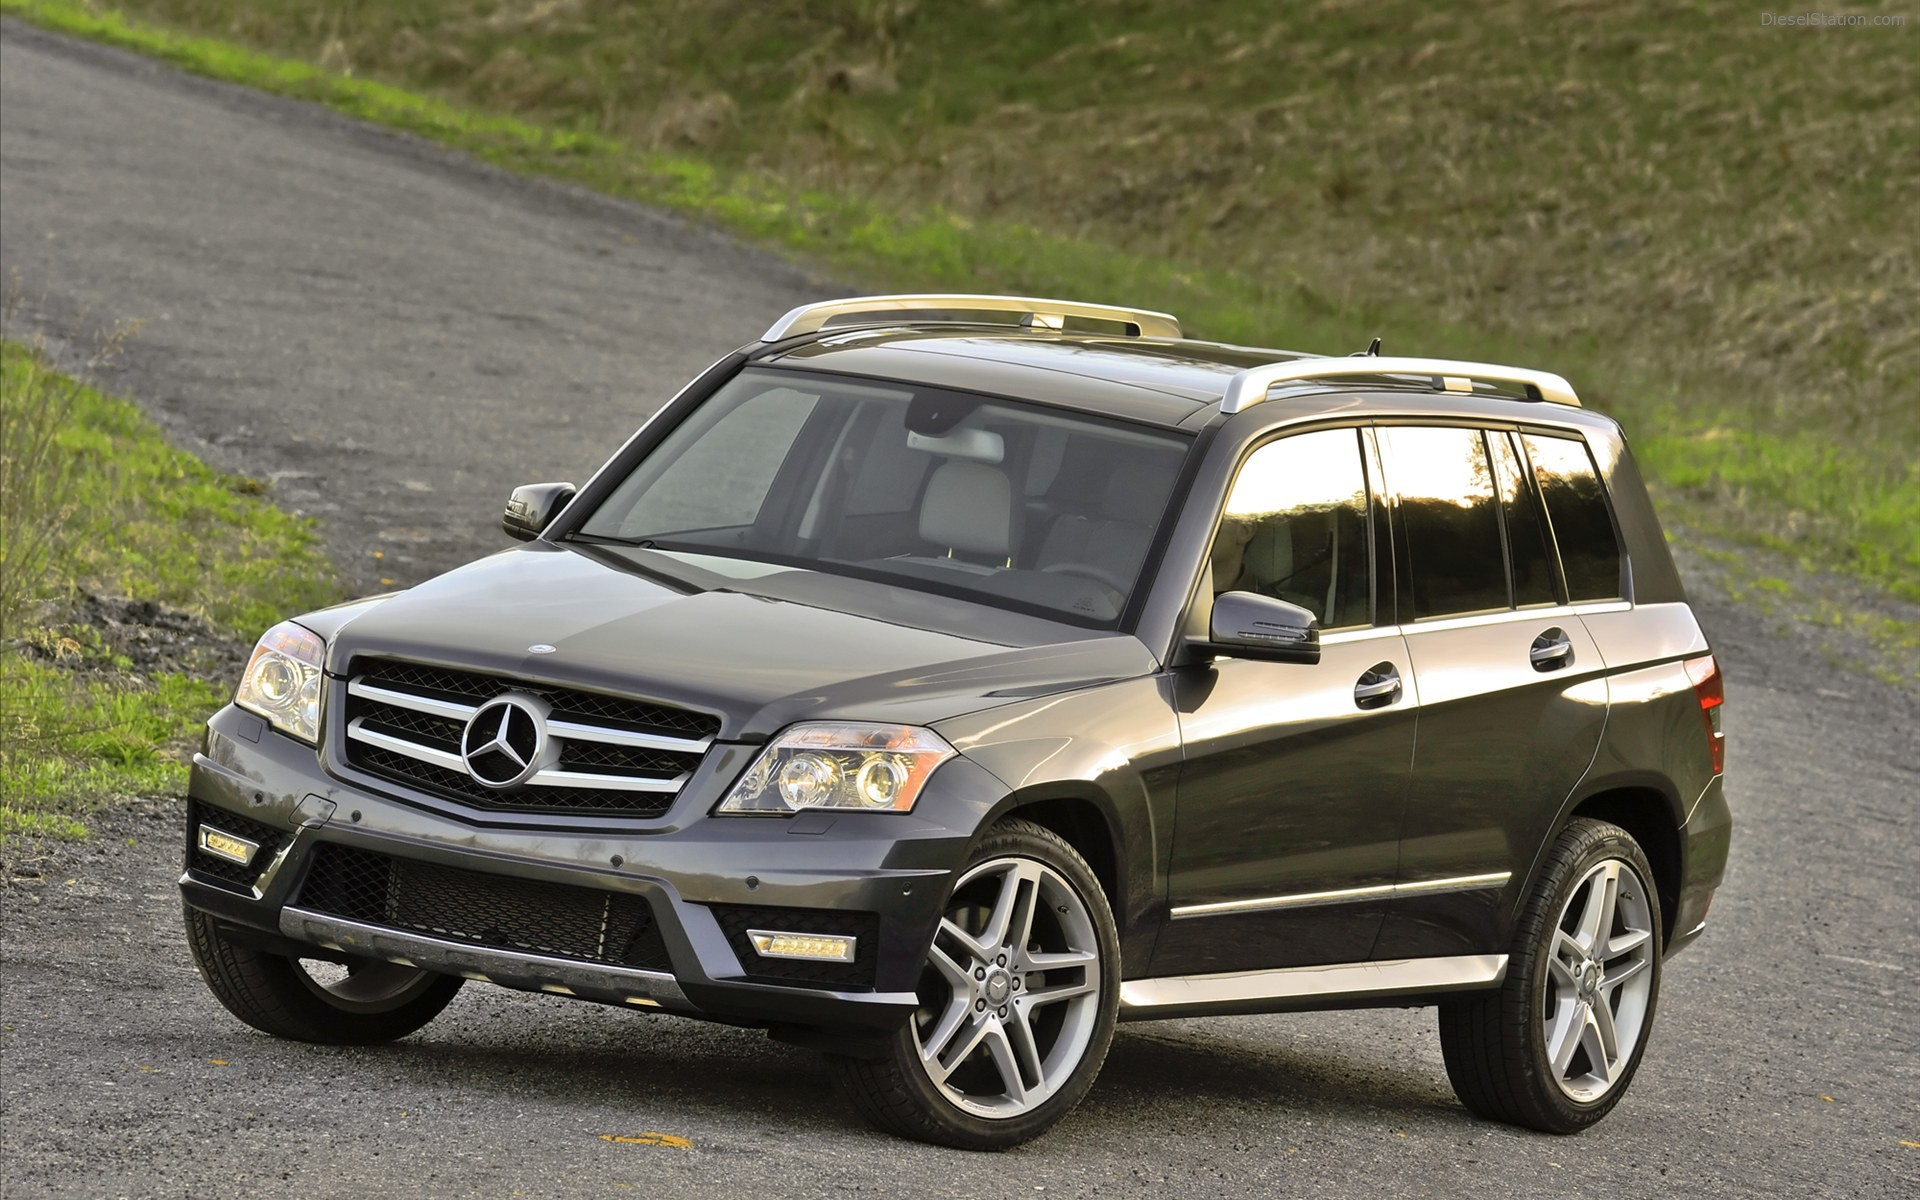 2017 mercedes benz glk350 4matic car photos catalog 2018 for Mercedes benz glk 350